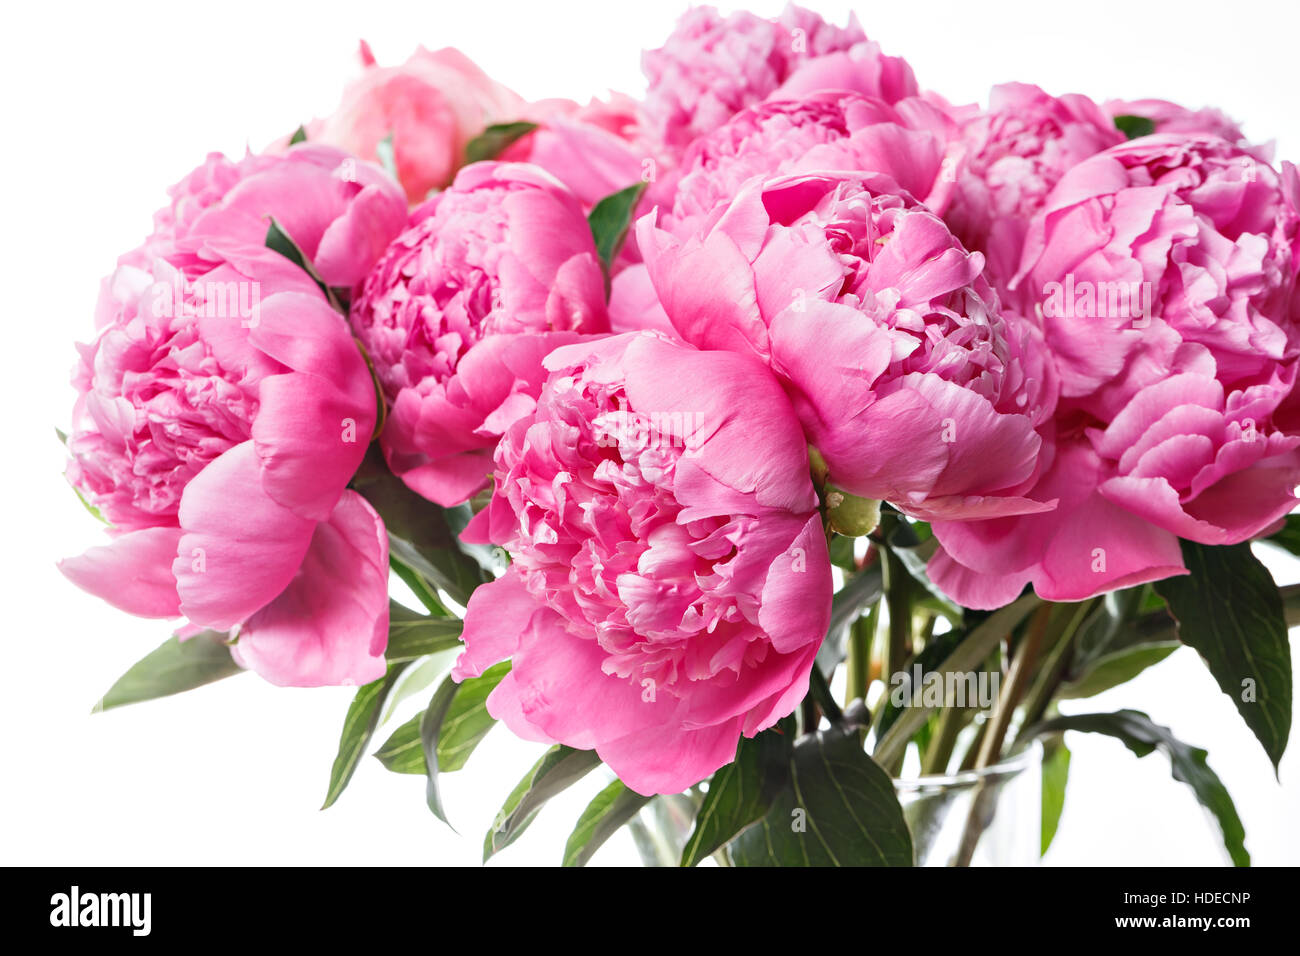 Fresh Bright Blooming Peonies Flowers On White Background And Pink